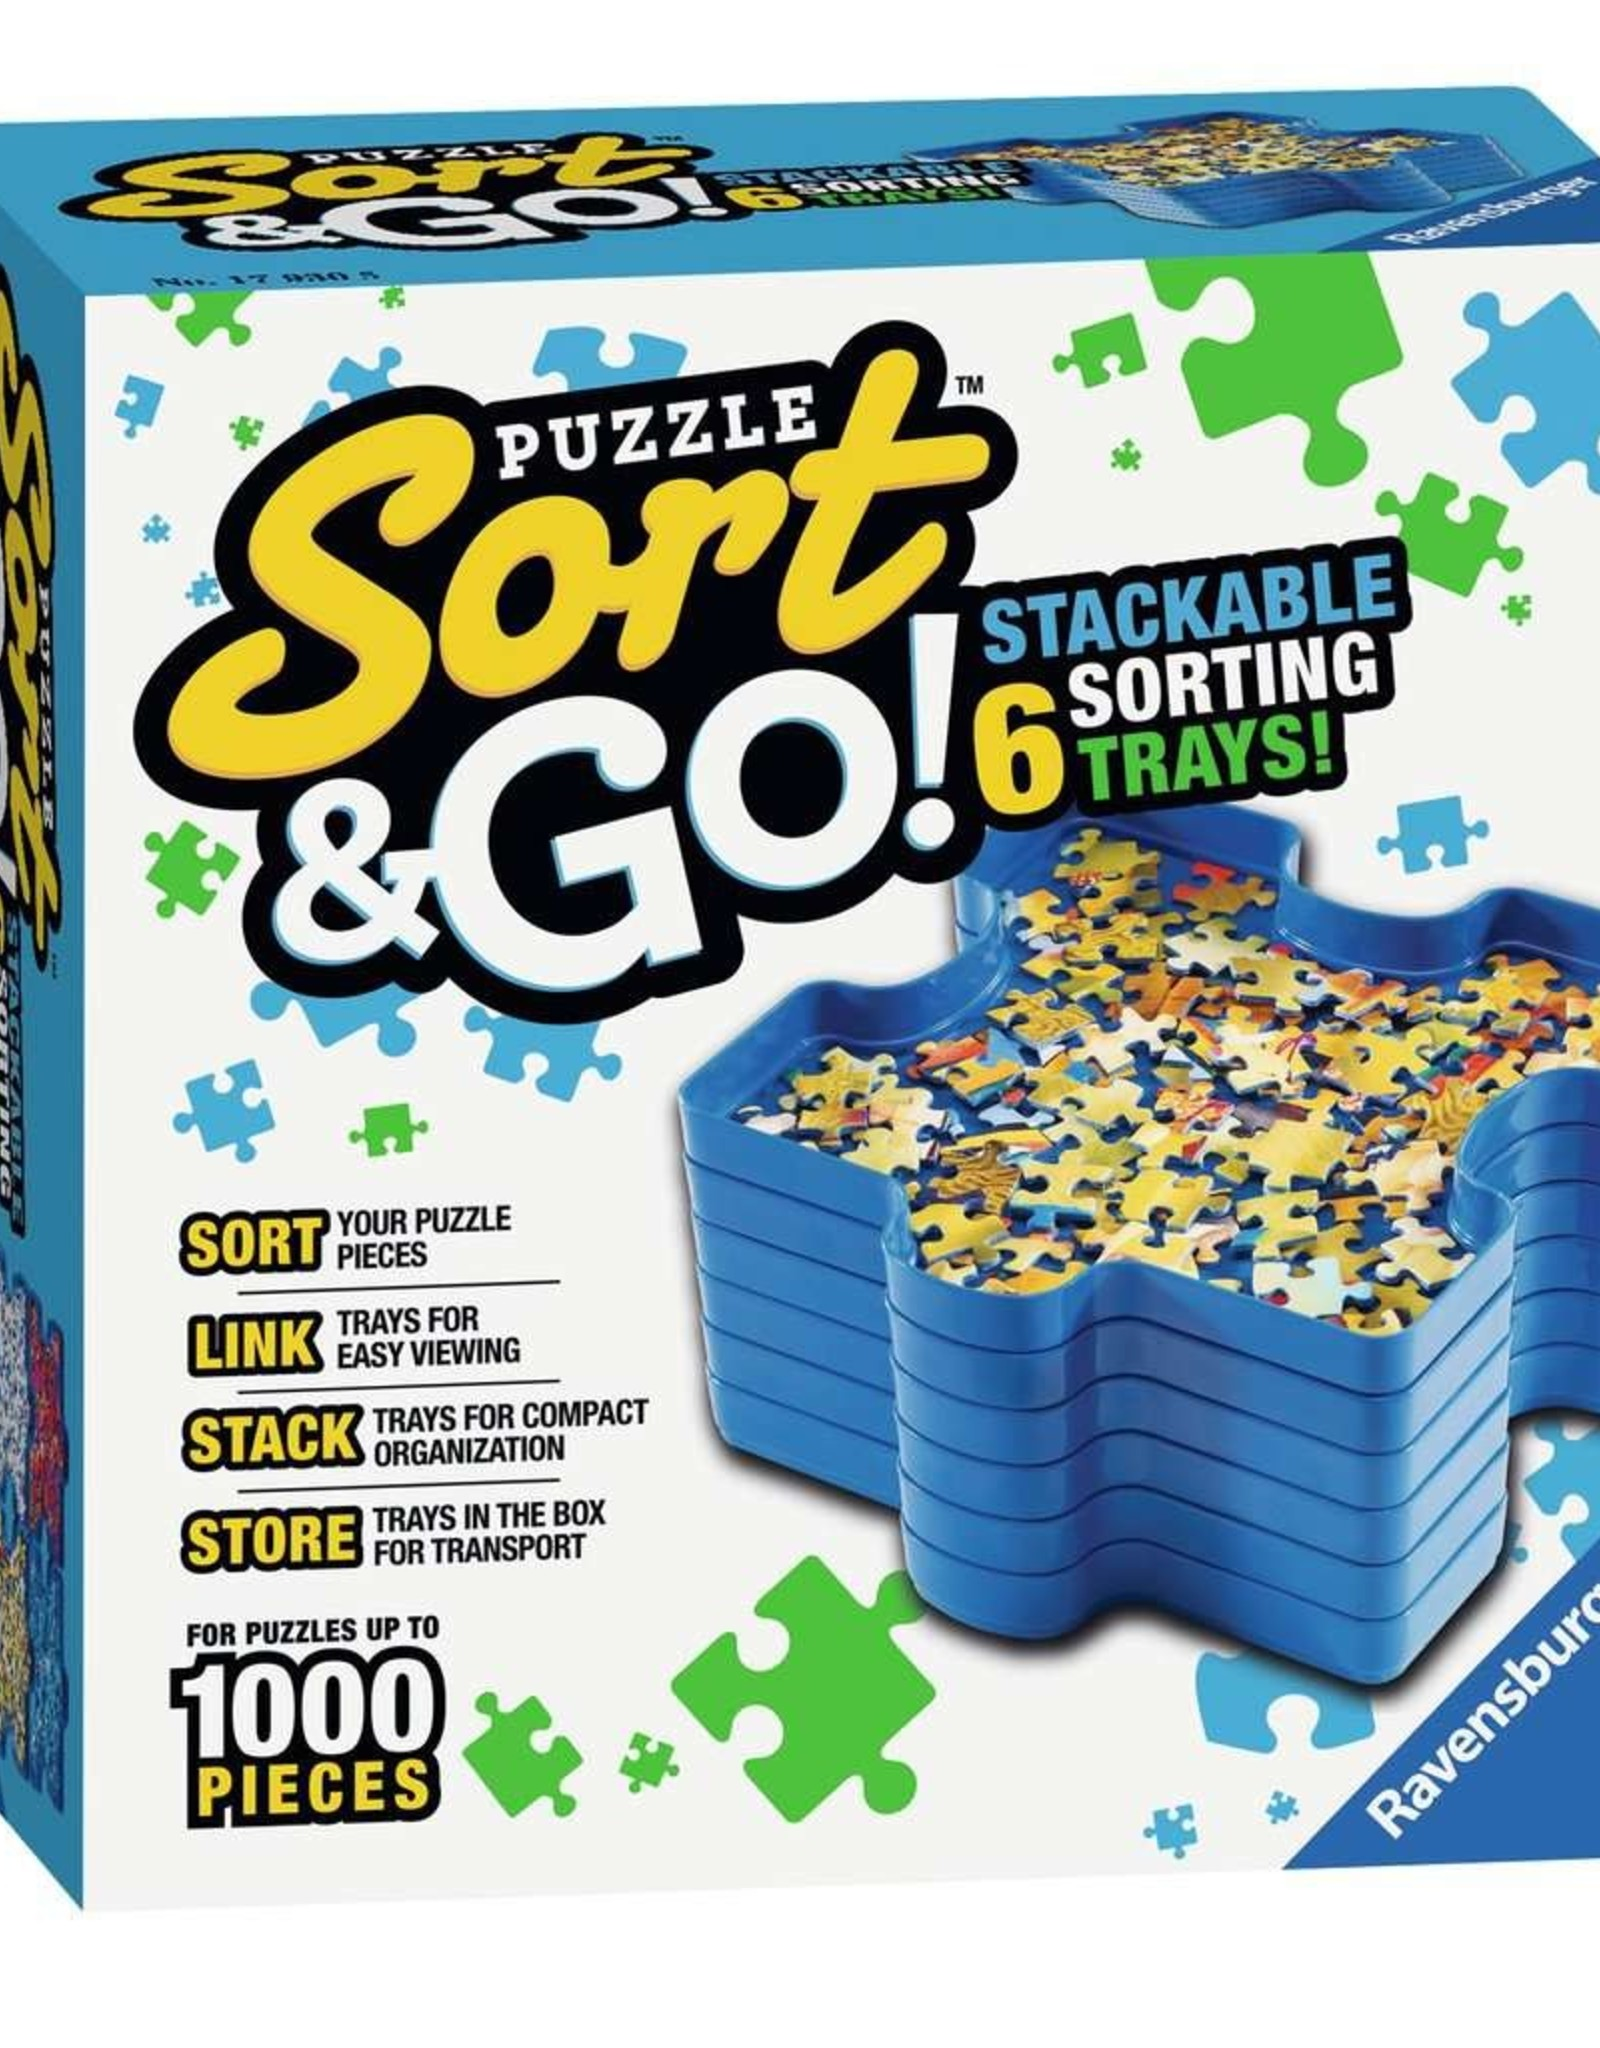 Ravensburger Puzzle Sort & Go